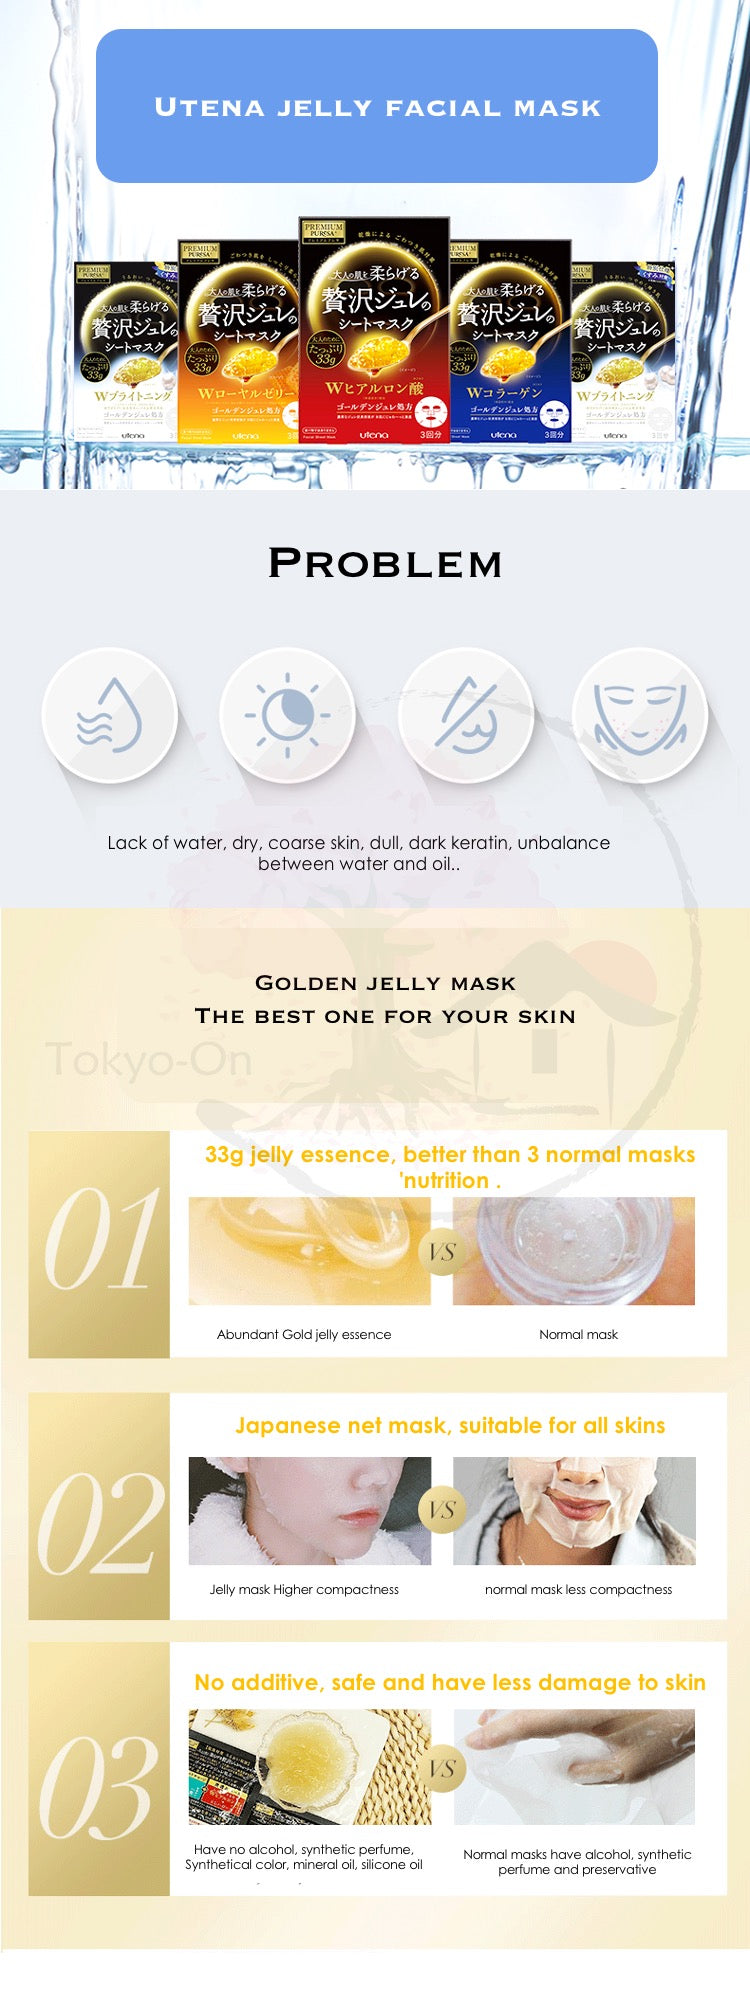 Tokyo-On Utena Premium Pure Collagen Jelly Facial Mask 3 sheets